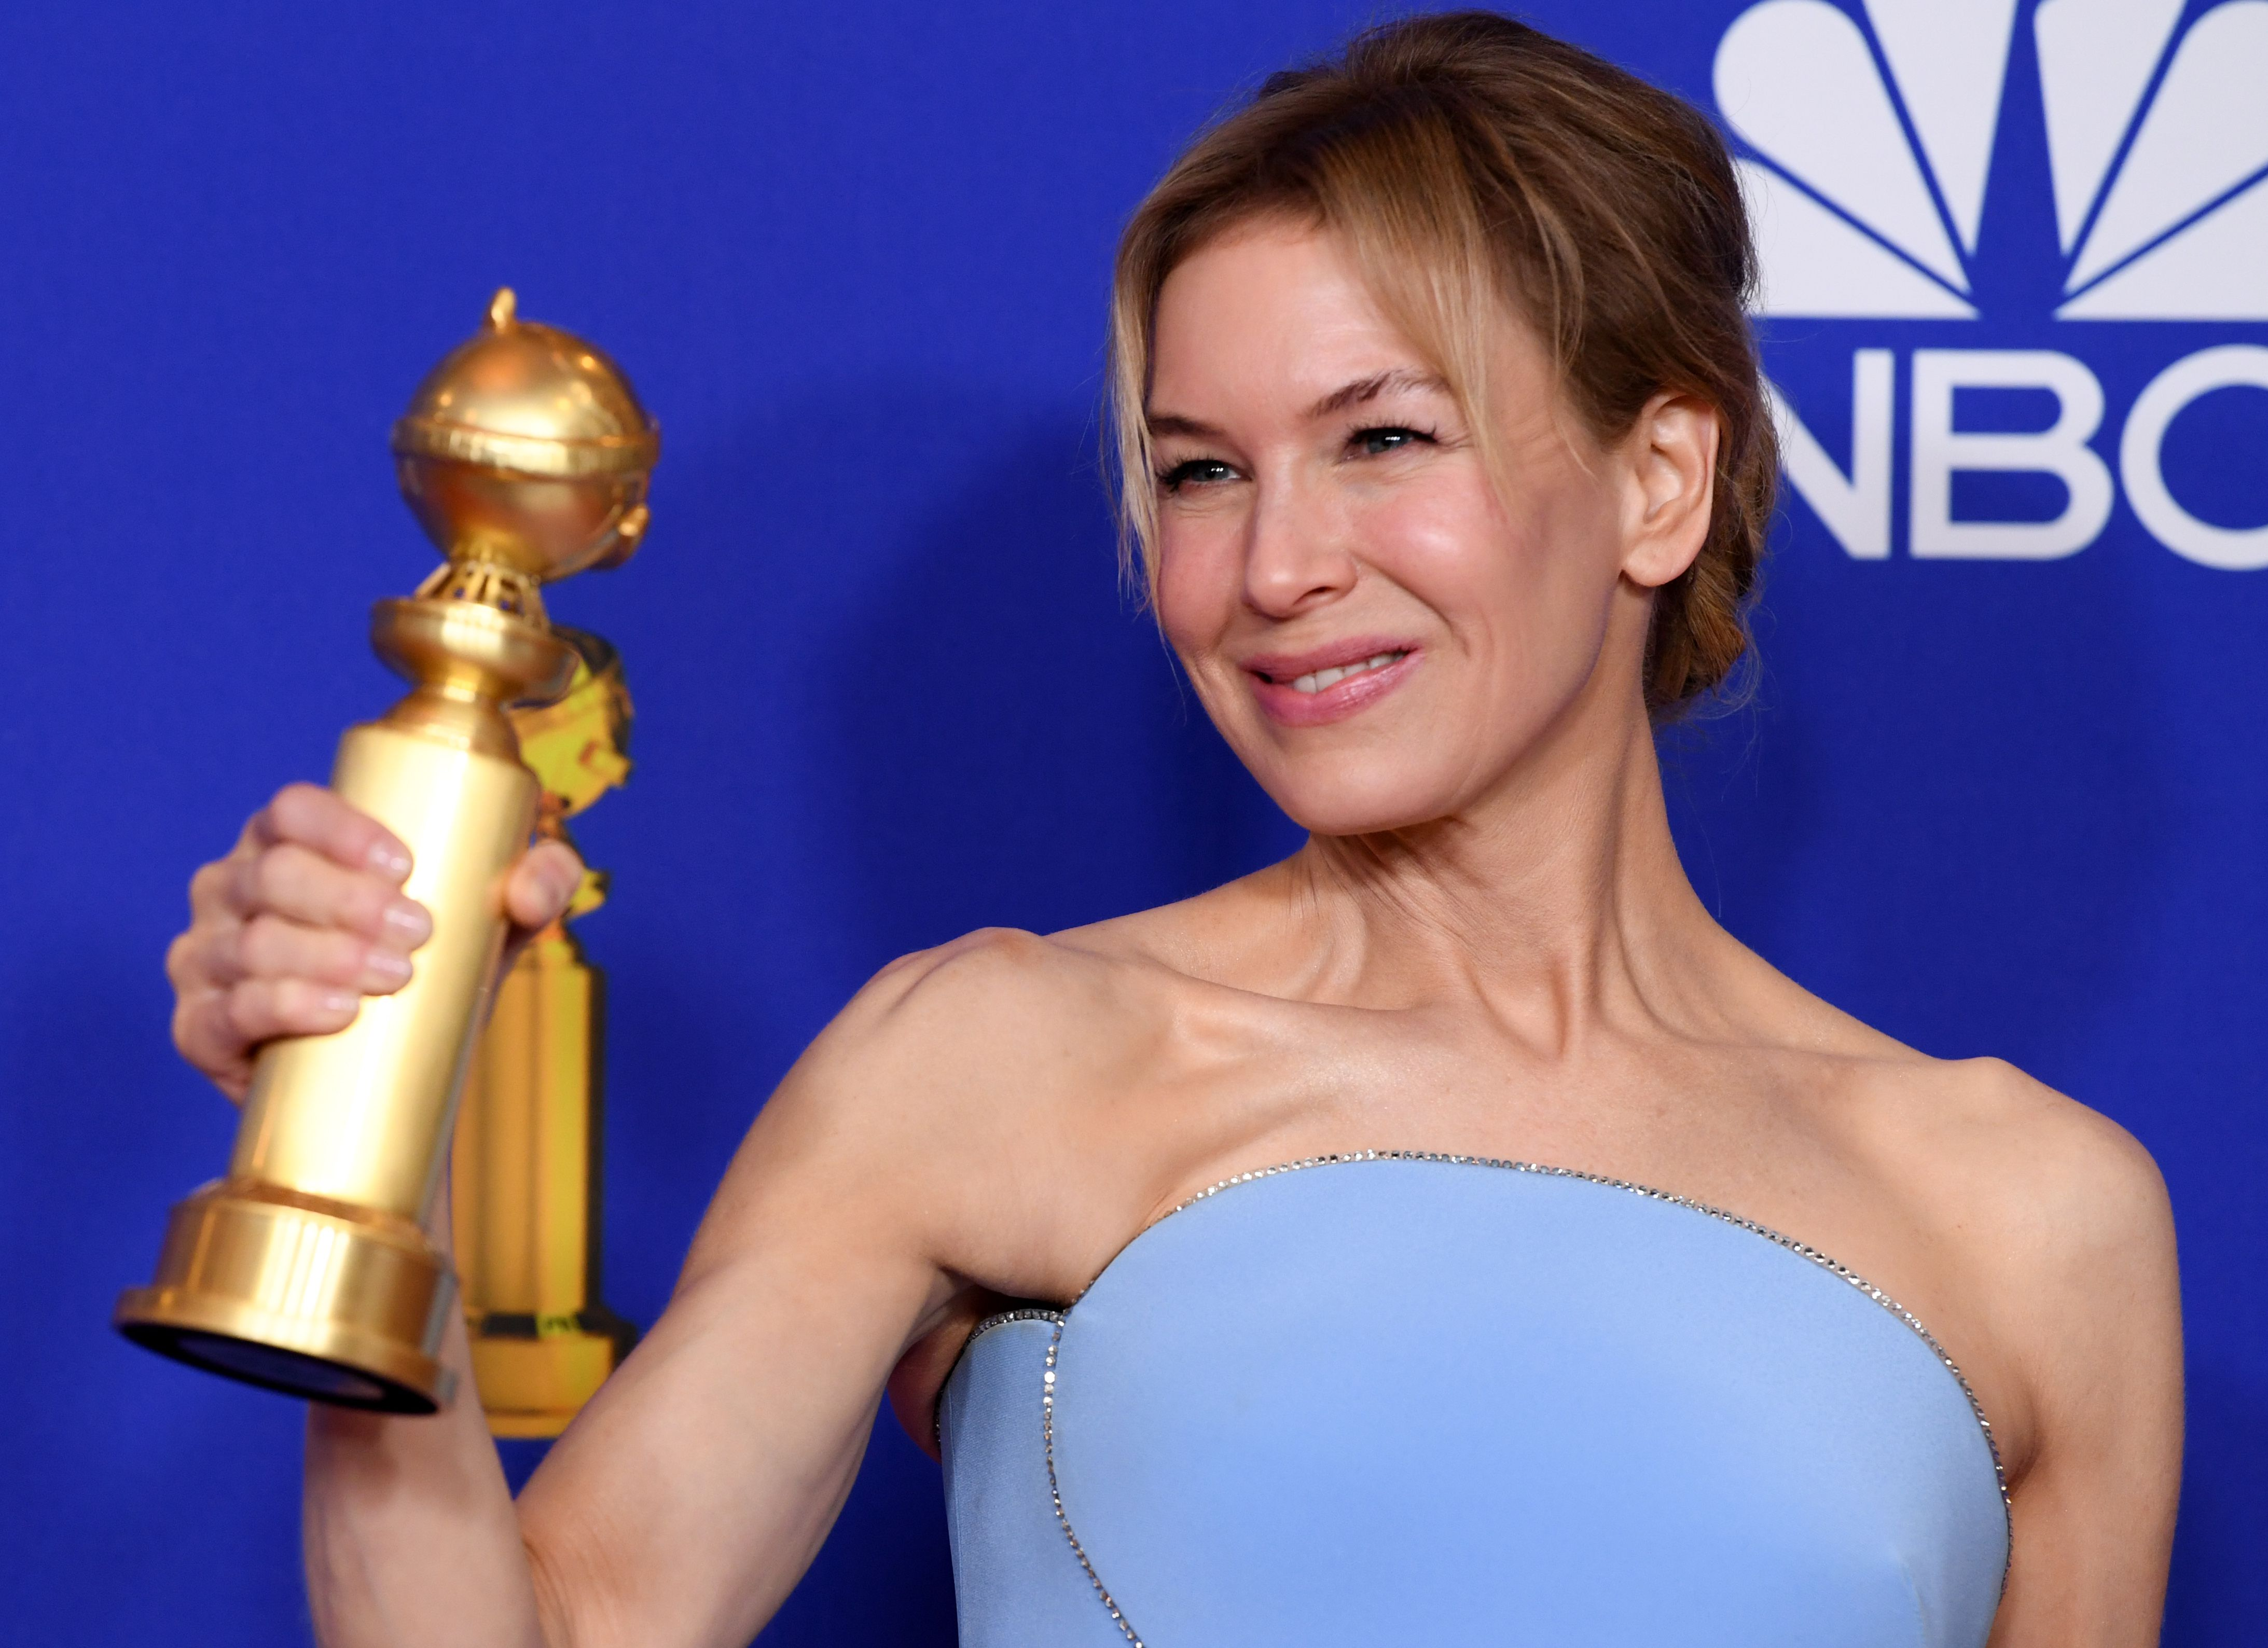 Renee Zellweger - Best Performance by an Actress in a Motion Picture, Drama - Judy77th Annual Golden Globe Awards, Press Room, Los Angeles, USA - 05 Jan 2020